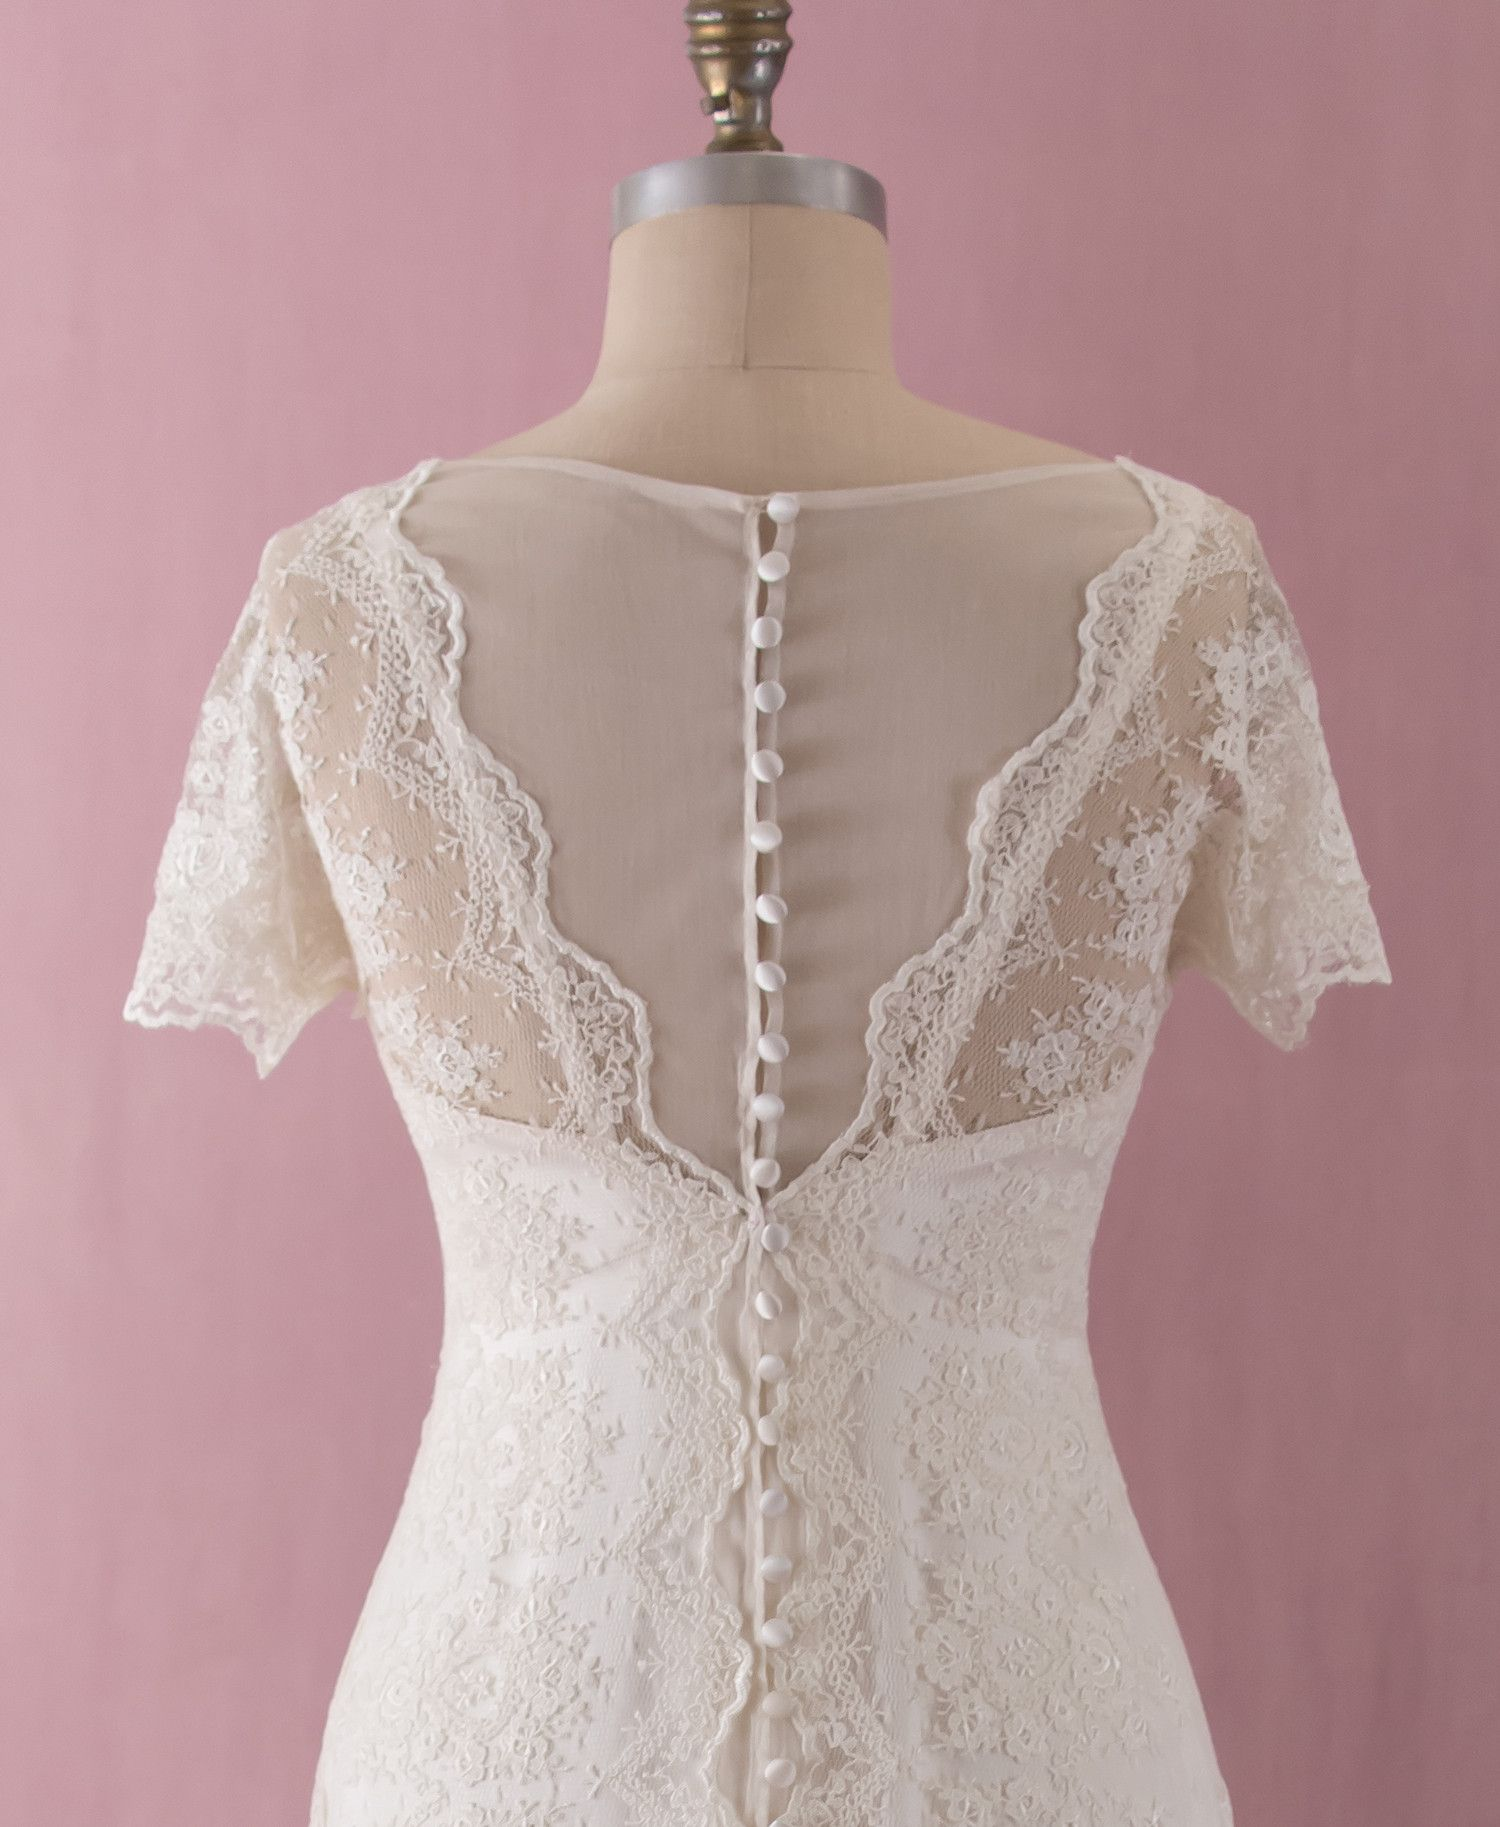 Mia by Martin McCrea   Venise pattern embroidered tulle wedding dress in an asymmetrical wrap style with cap sleeves and satin button back closure. Double silk charmeuse slip dress in 1930's design can be worn separately as an evening gown.